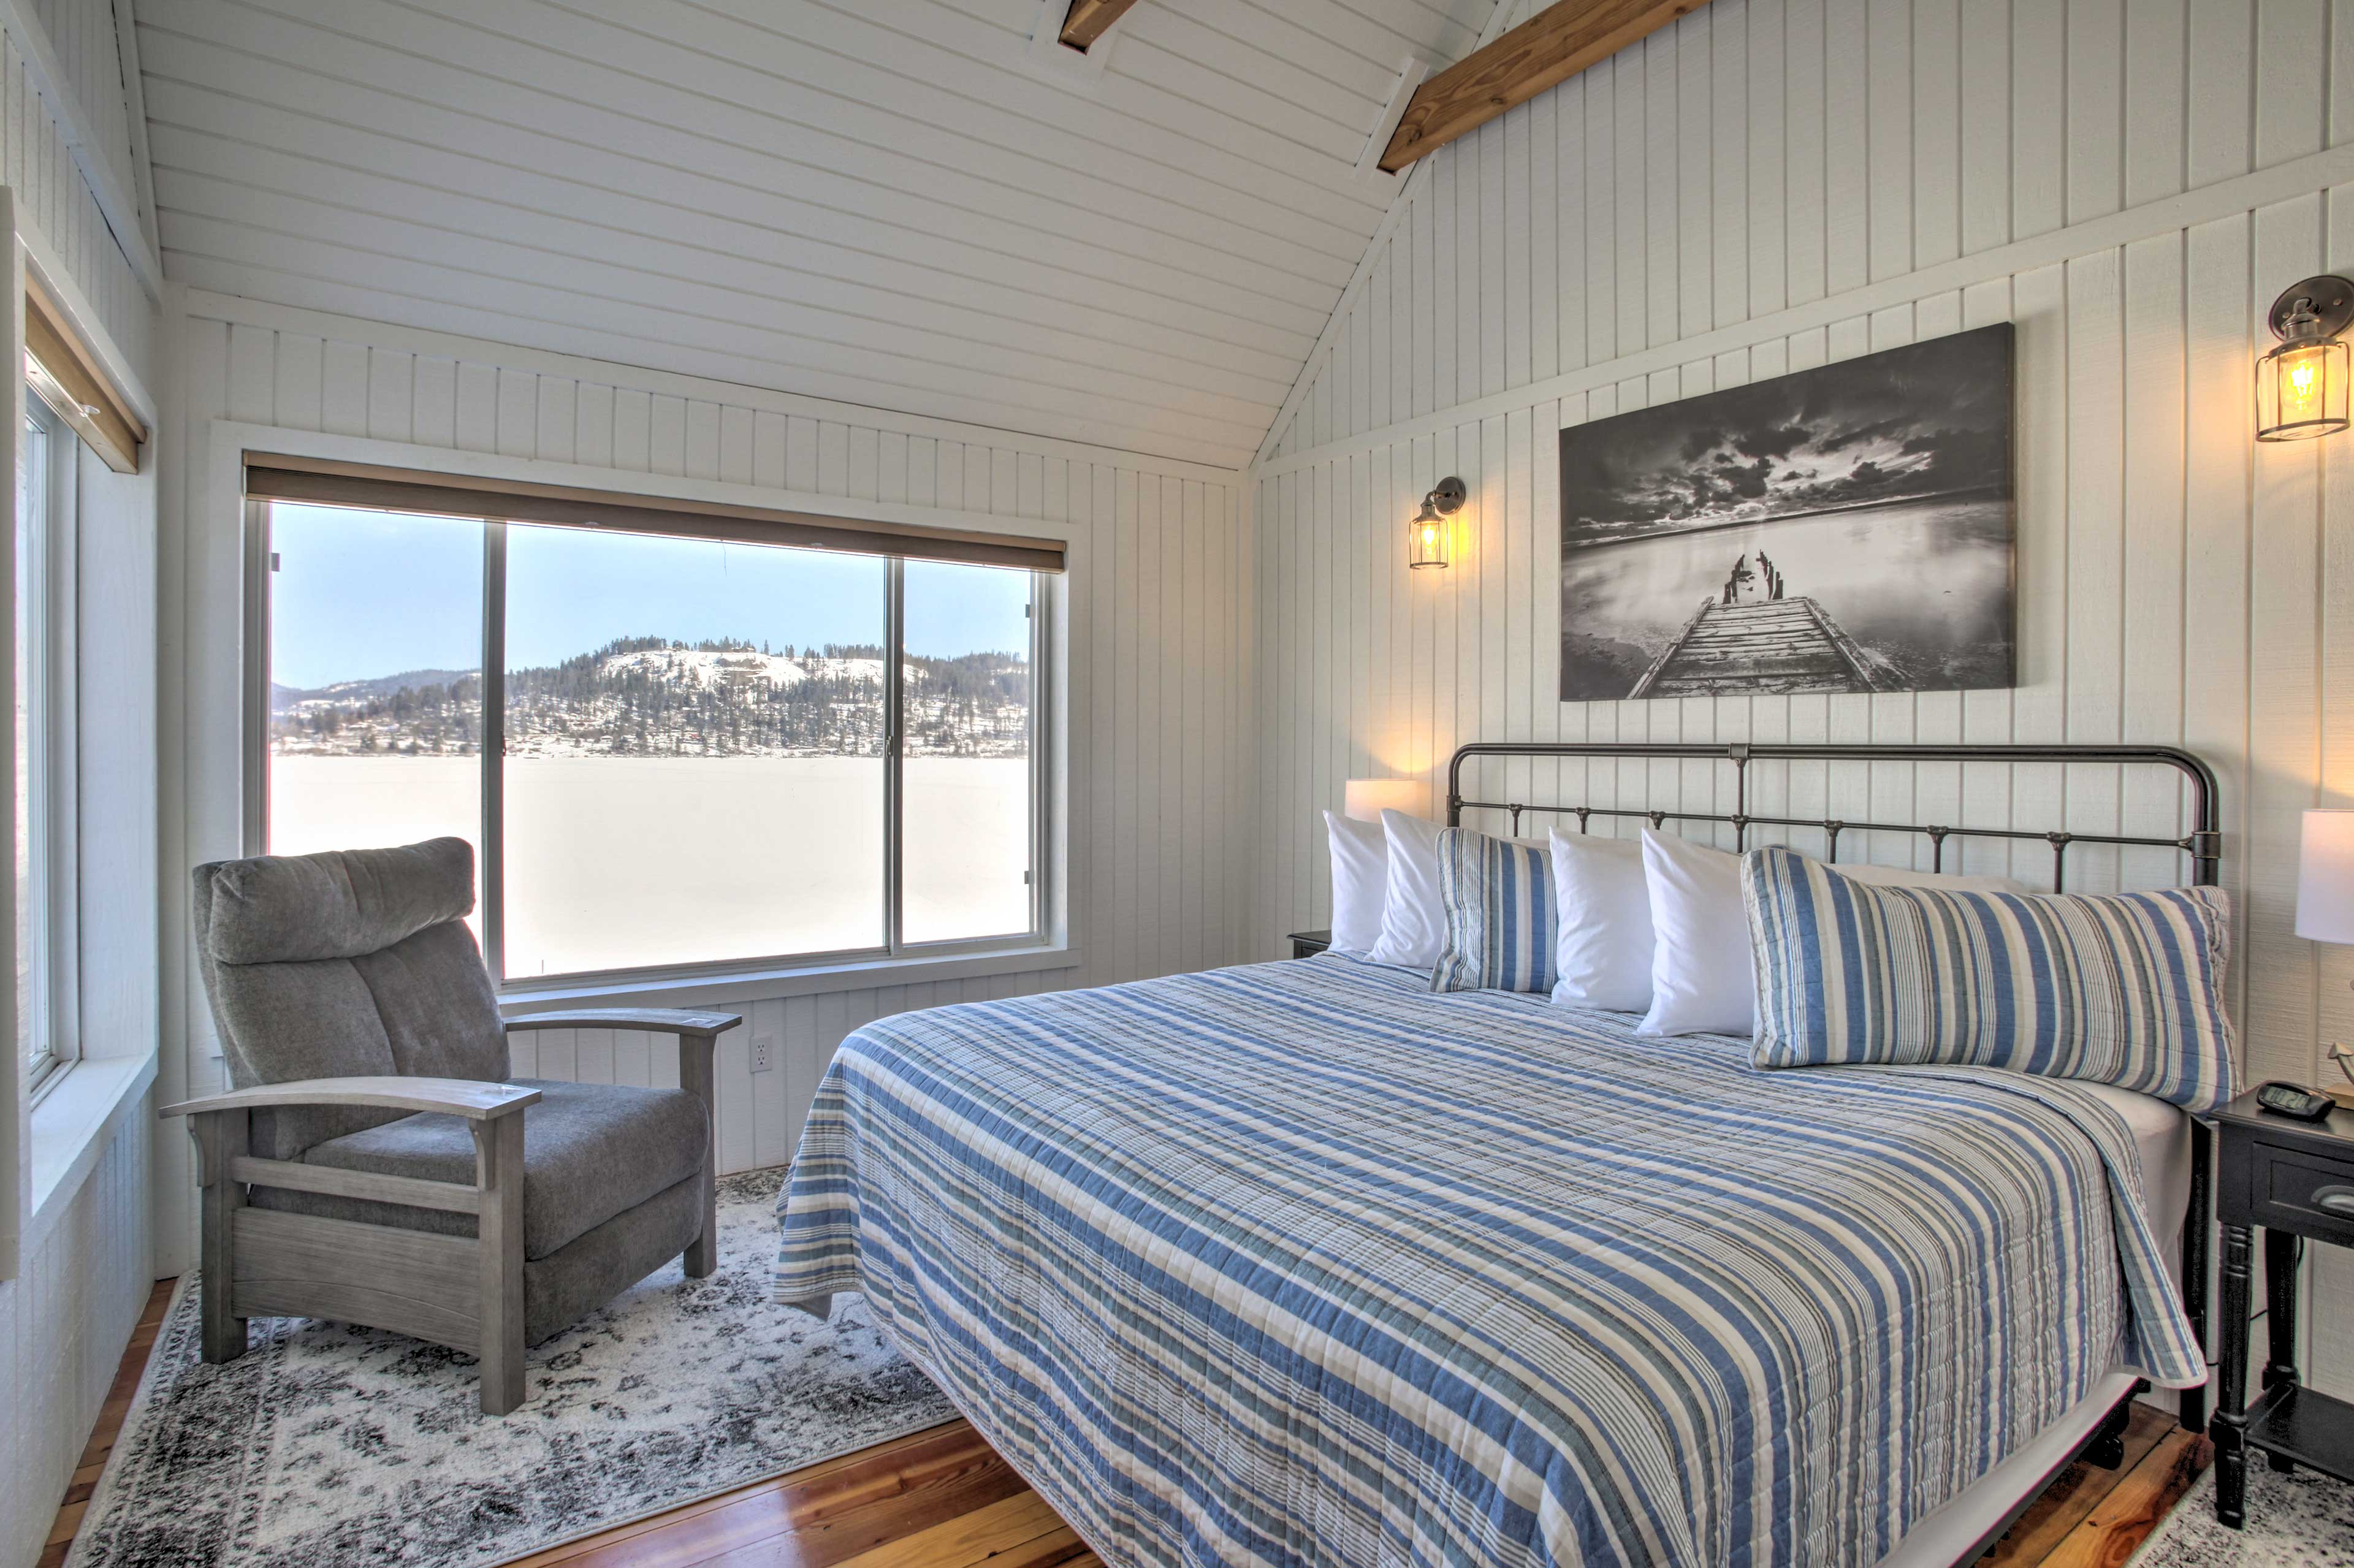 The house includes 5 well-appointed bedrooms.